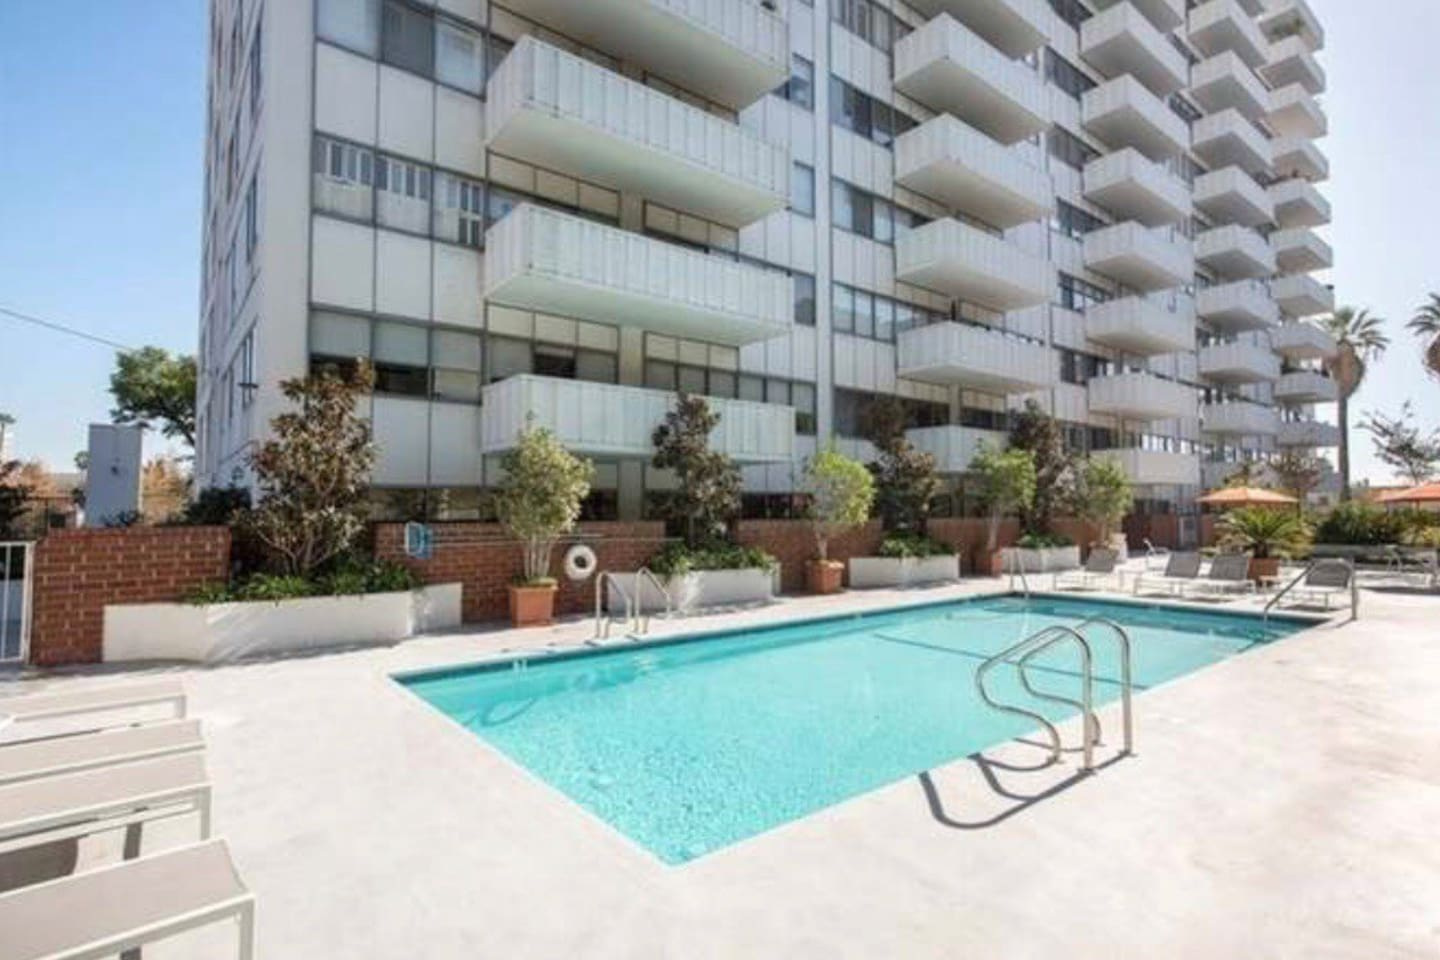 Heated pool year round with lay out area: the ultimate LA experience